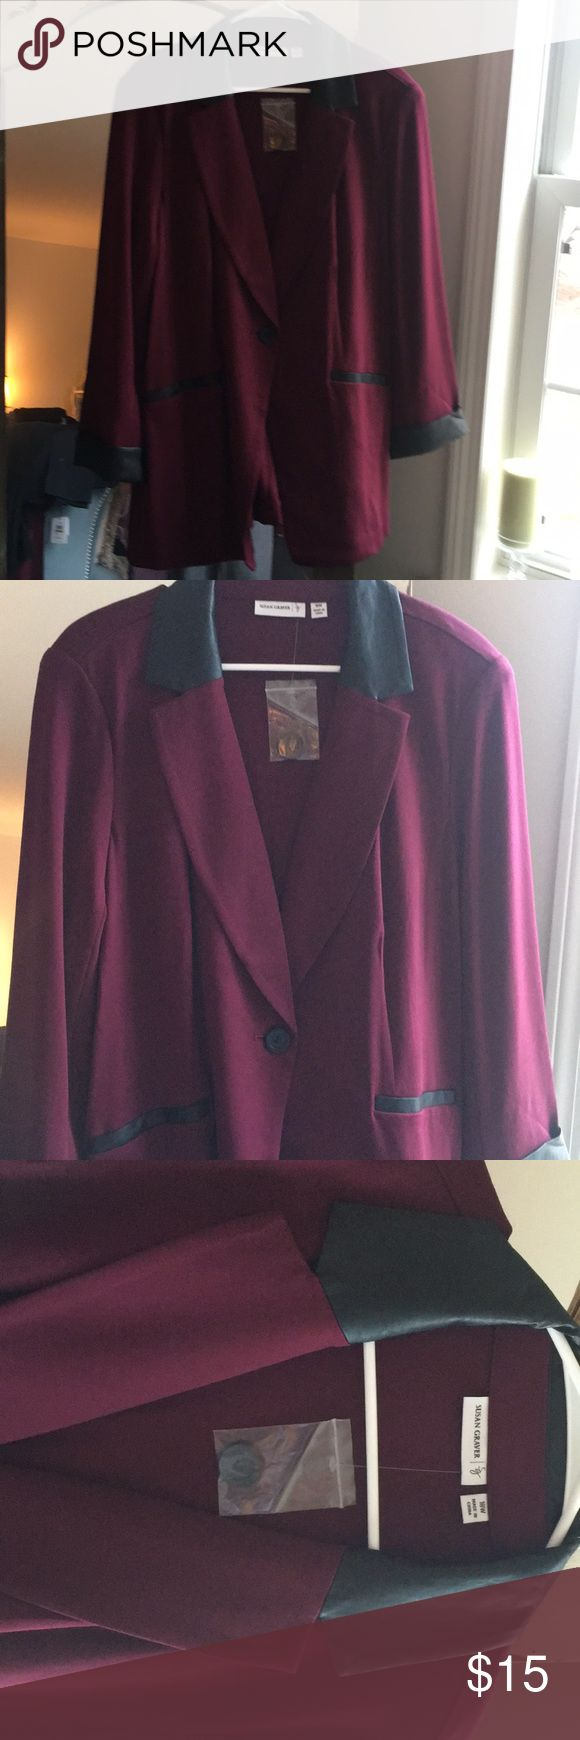 Susan graver blazer with faux leather trim Never worn still on Qvc website Jackets & Coats Blazers